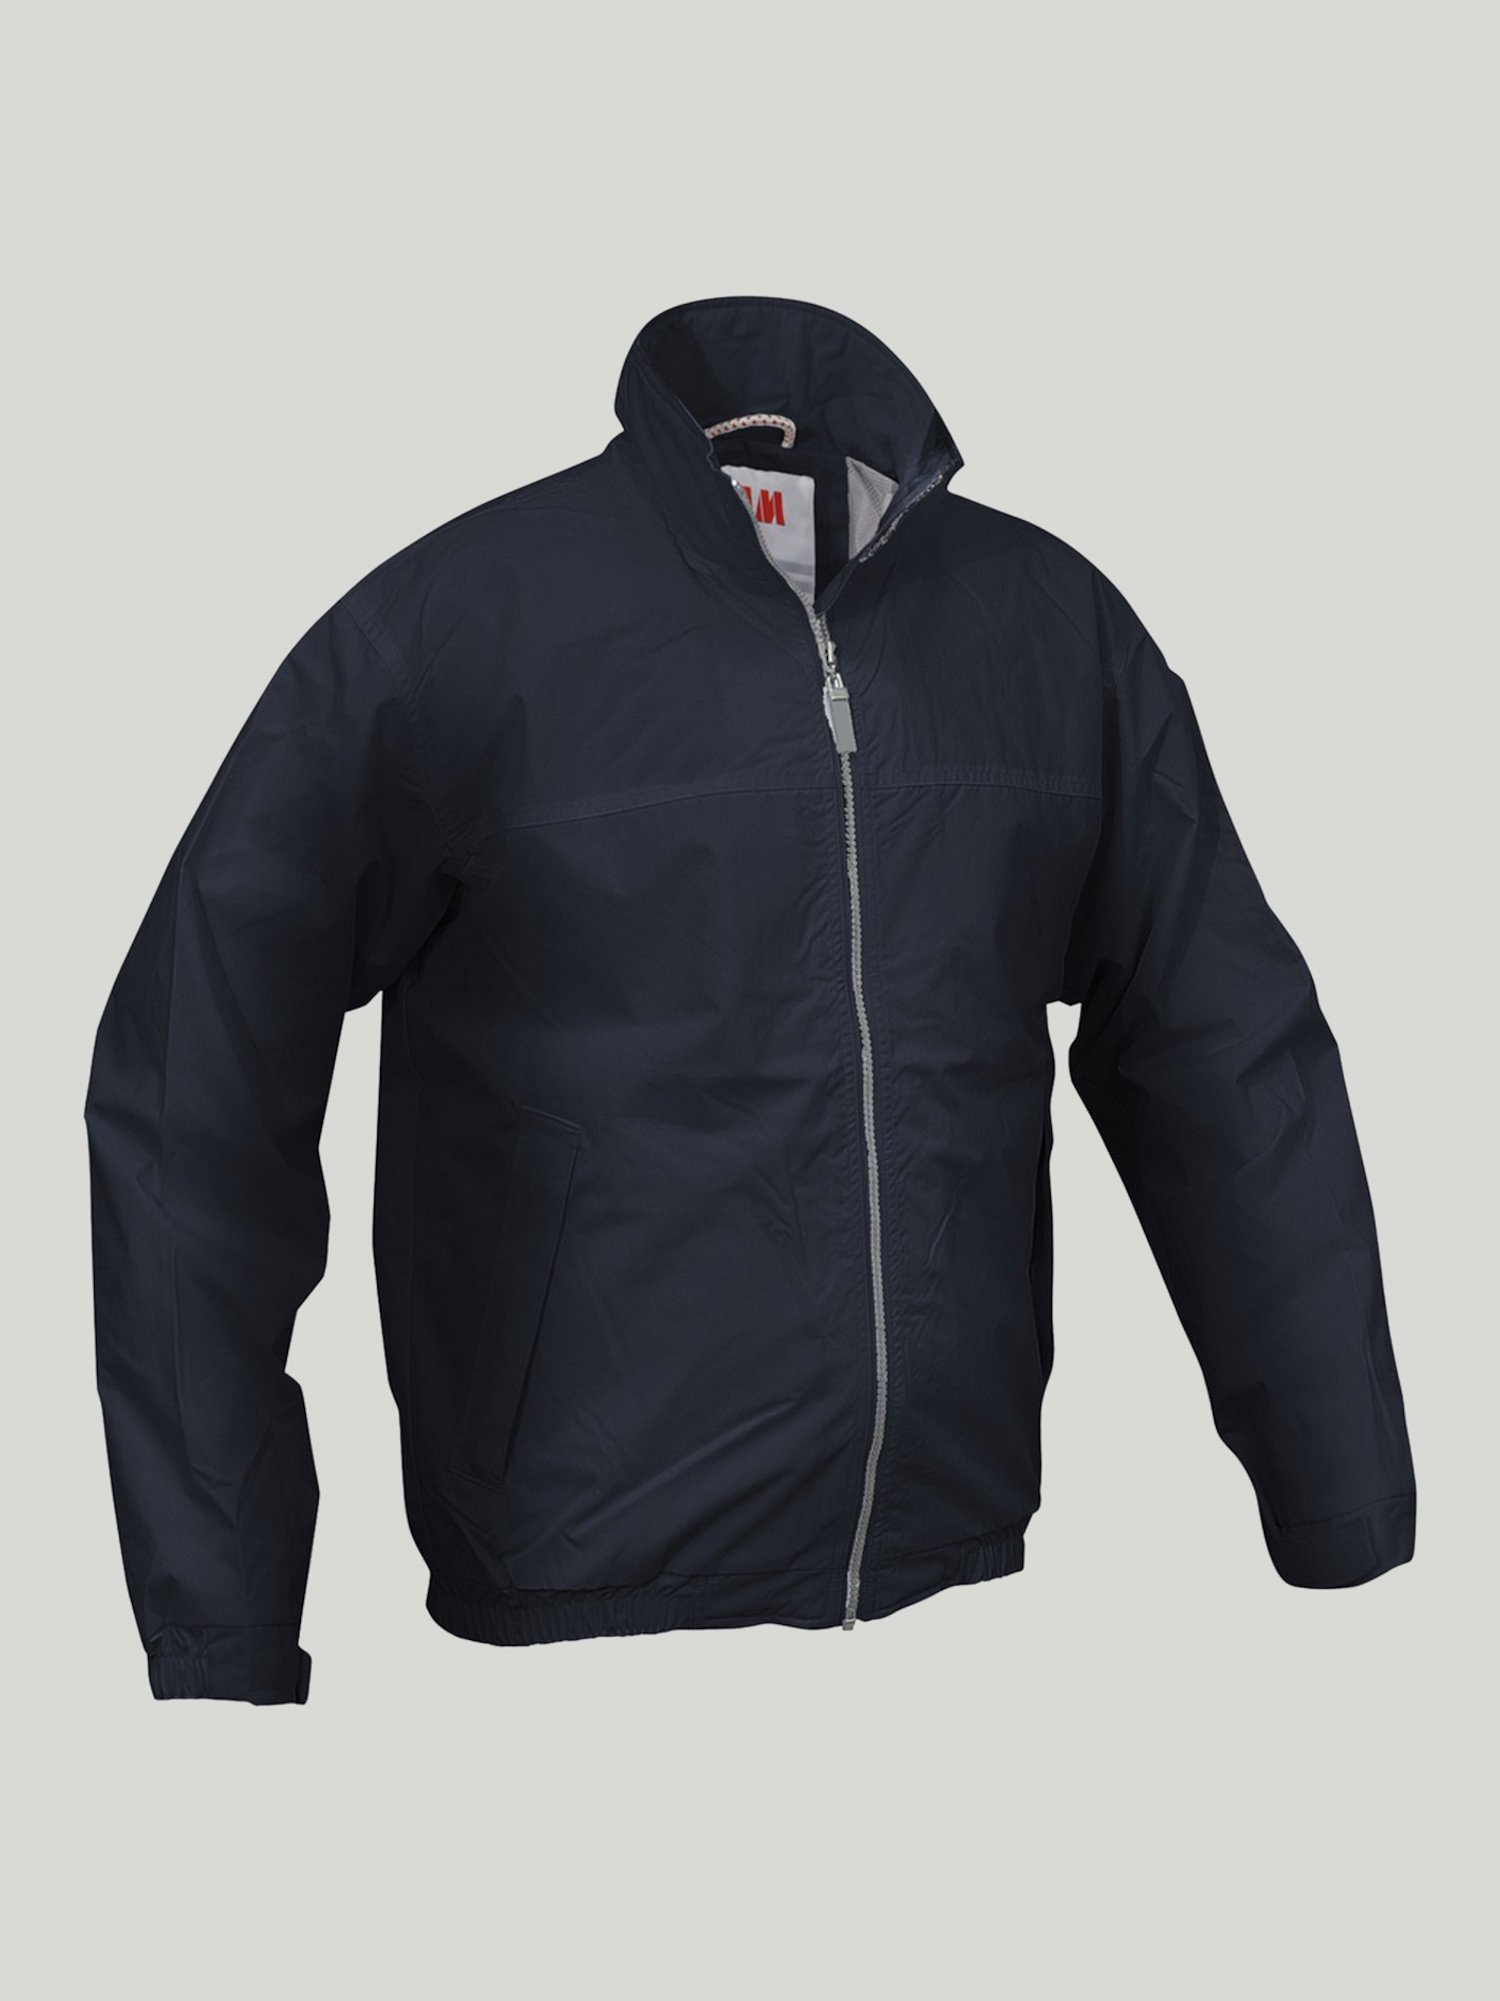 SUMMER SAILING JKT - Navy